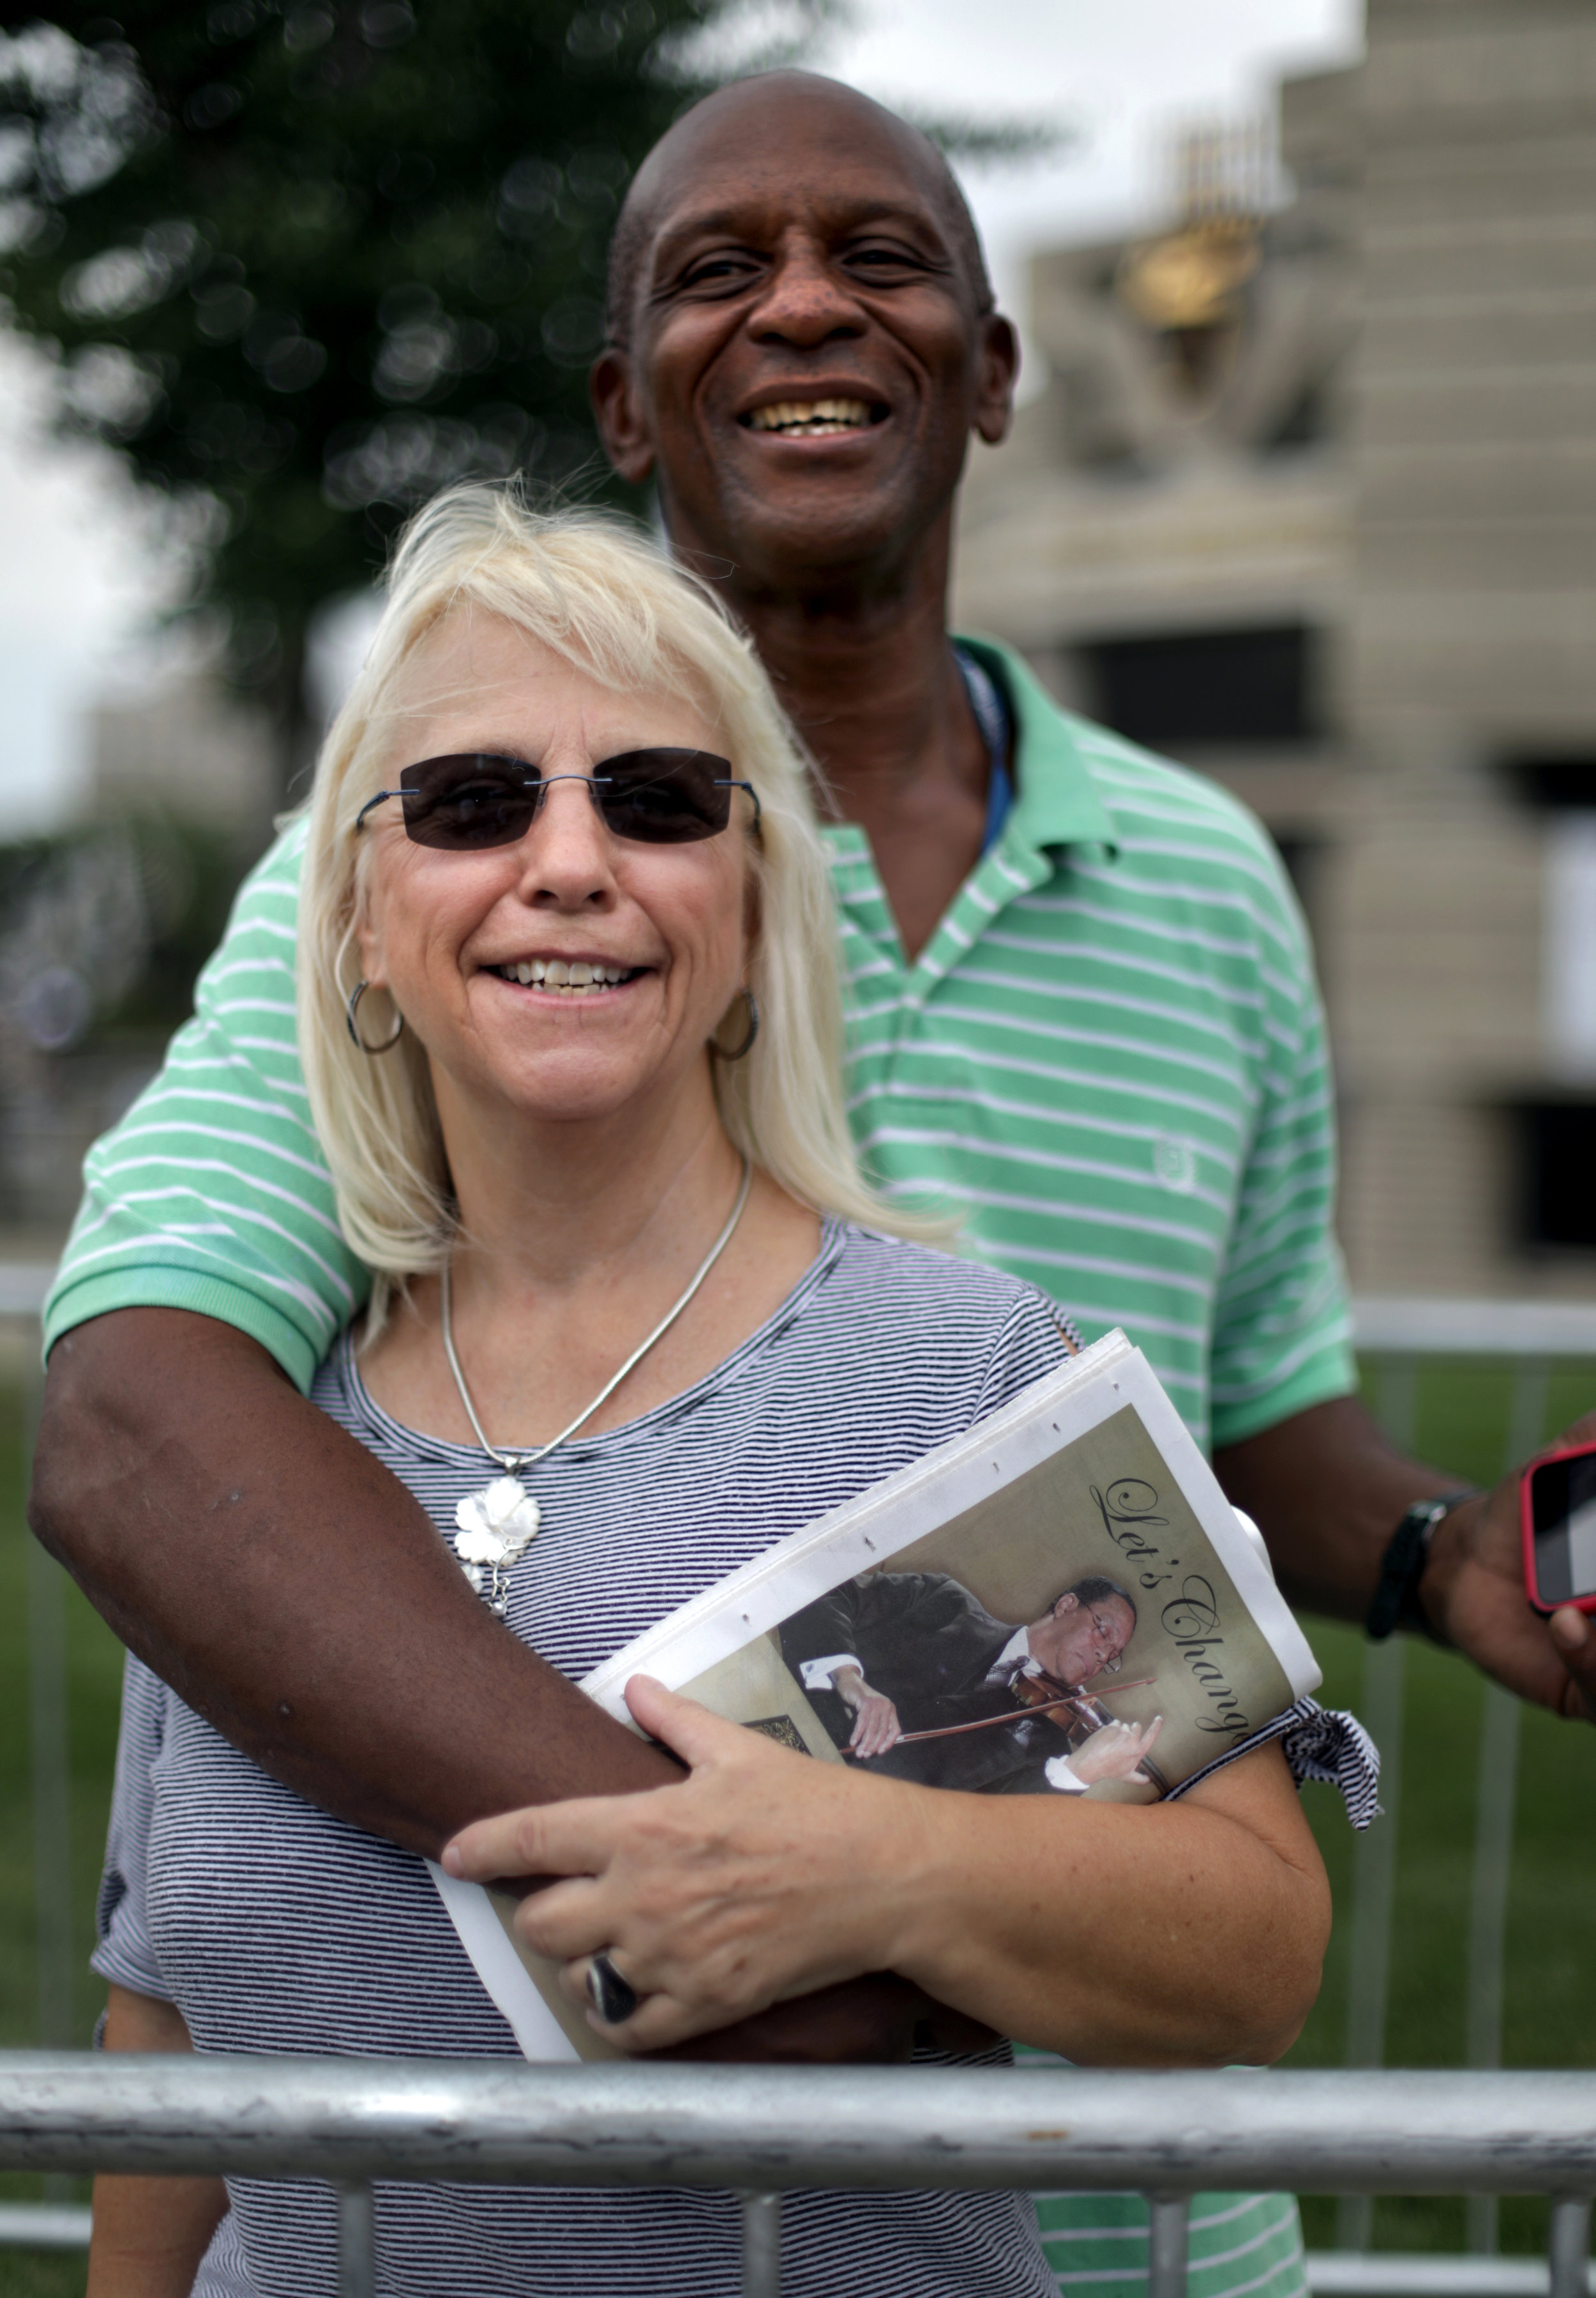 Carlotta Wedge, 59 and Michael Lundy, 58 of Jackson, Florida.